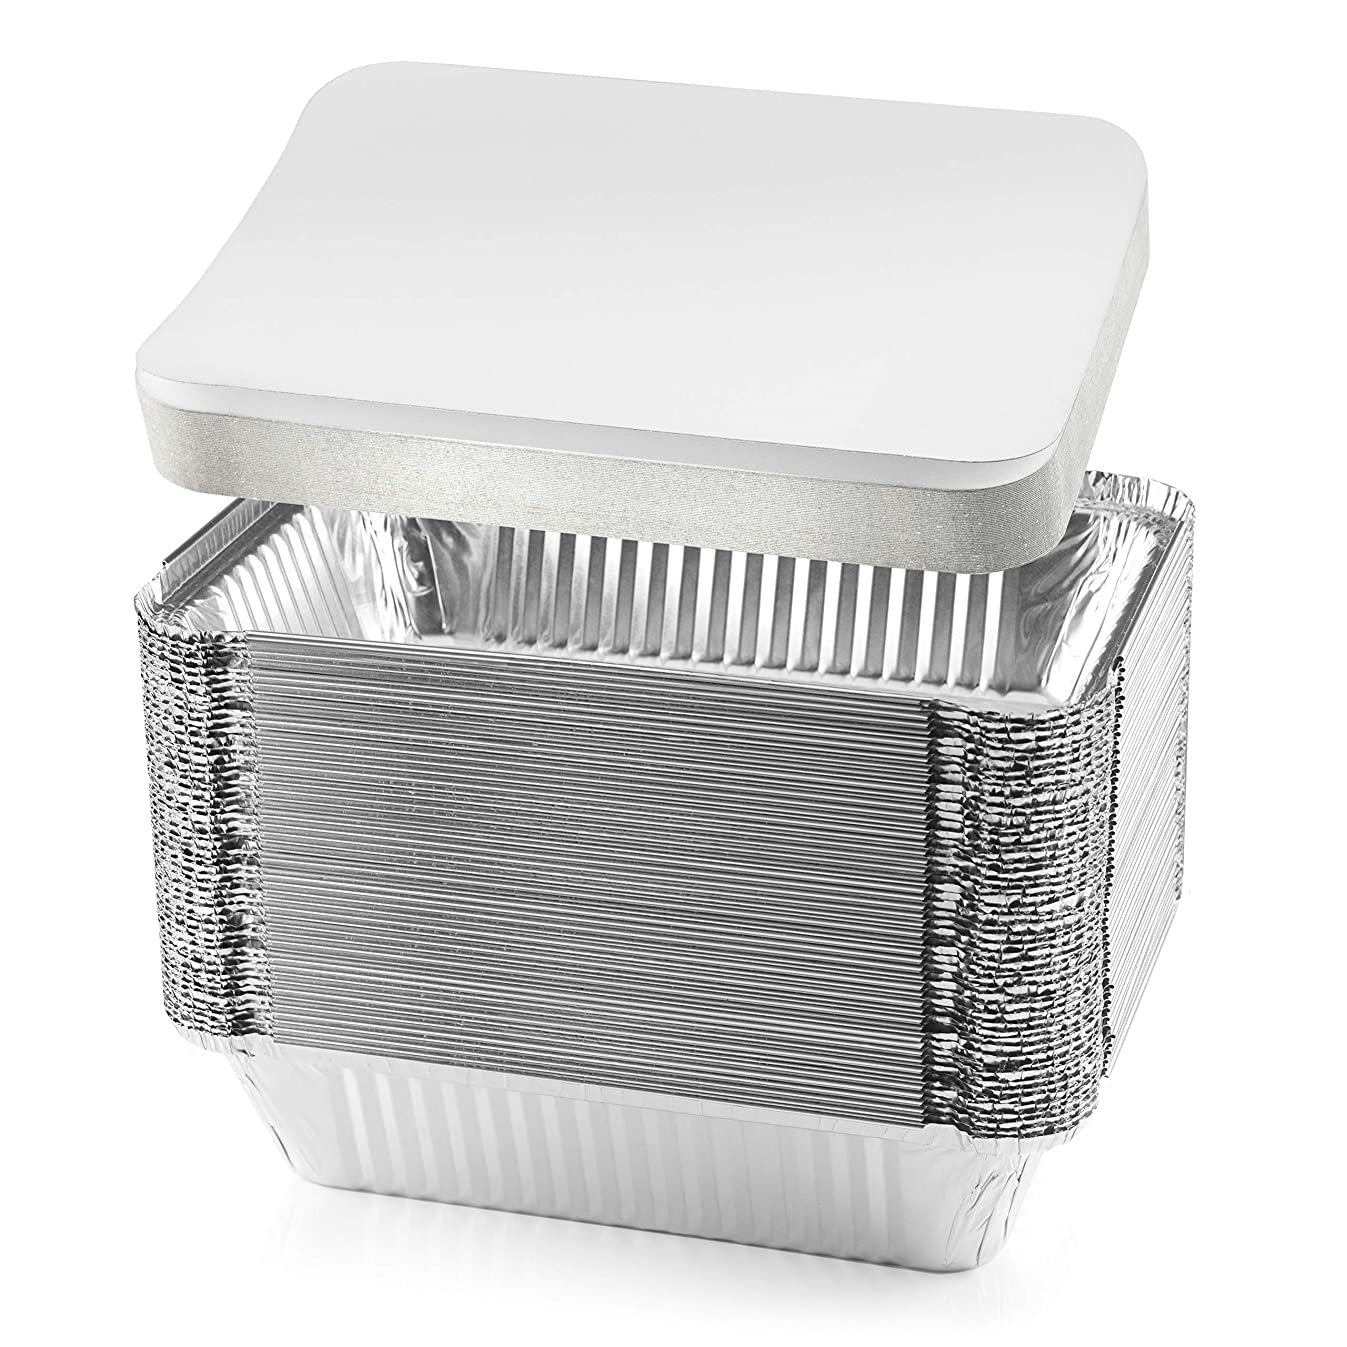 NYHI 50-Pack Heavy Duty Disposable Aluminum Oblong Foil Pans with Lid Covers Recyclable Tin Food Storage Tray Extra-Sturdy Containers for Cooking, Baking, Meal Prep, Takeout - 8.4